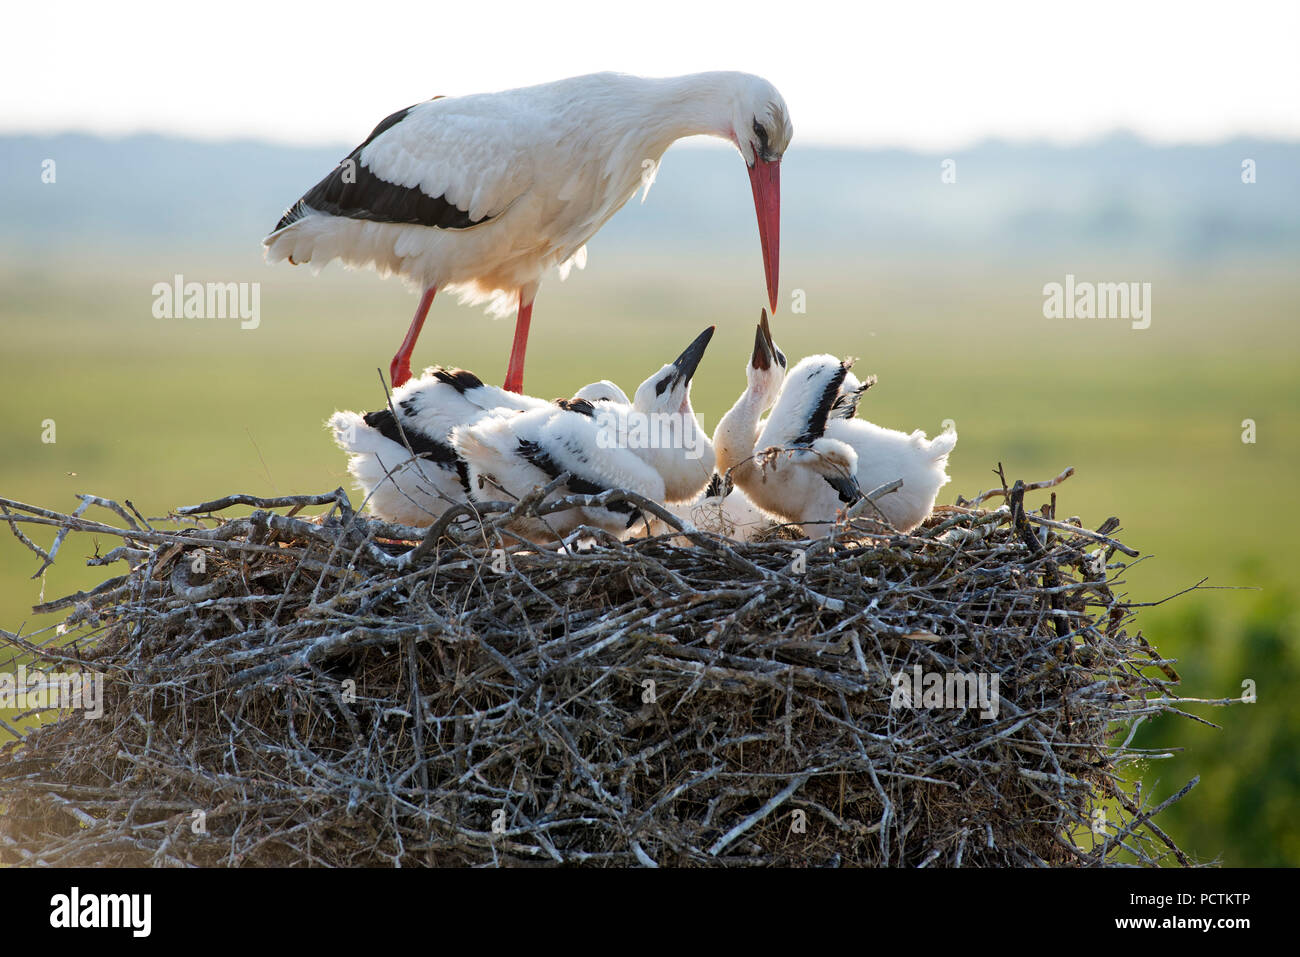 White stork, youngs asking something to eat, France - Stock Image